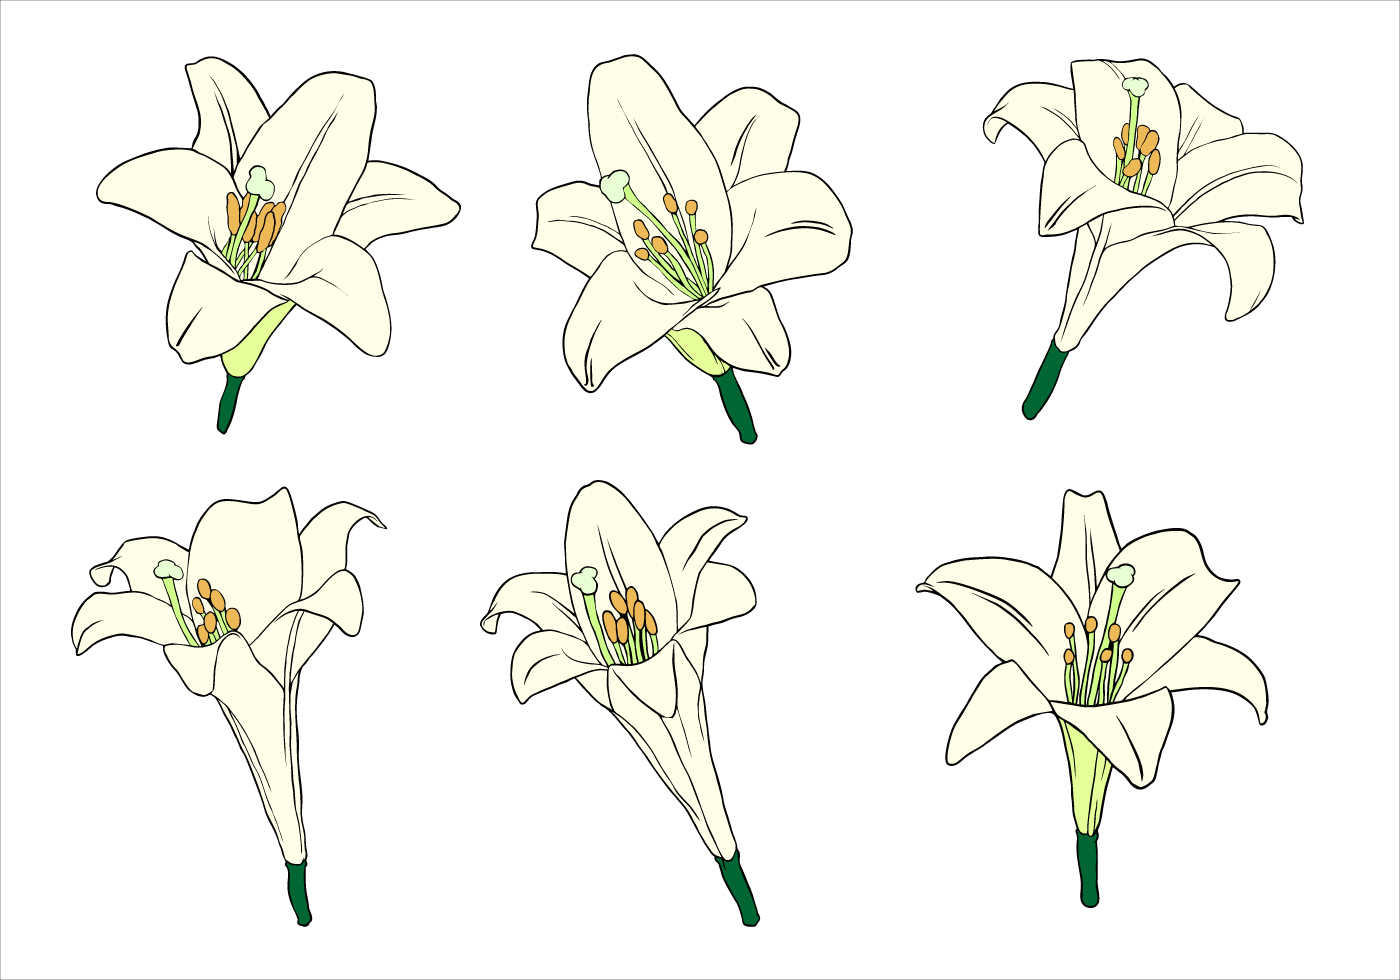 Easter Lily Free Vector - Download Free Vector Art, Stock ...